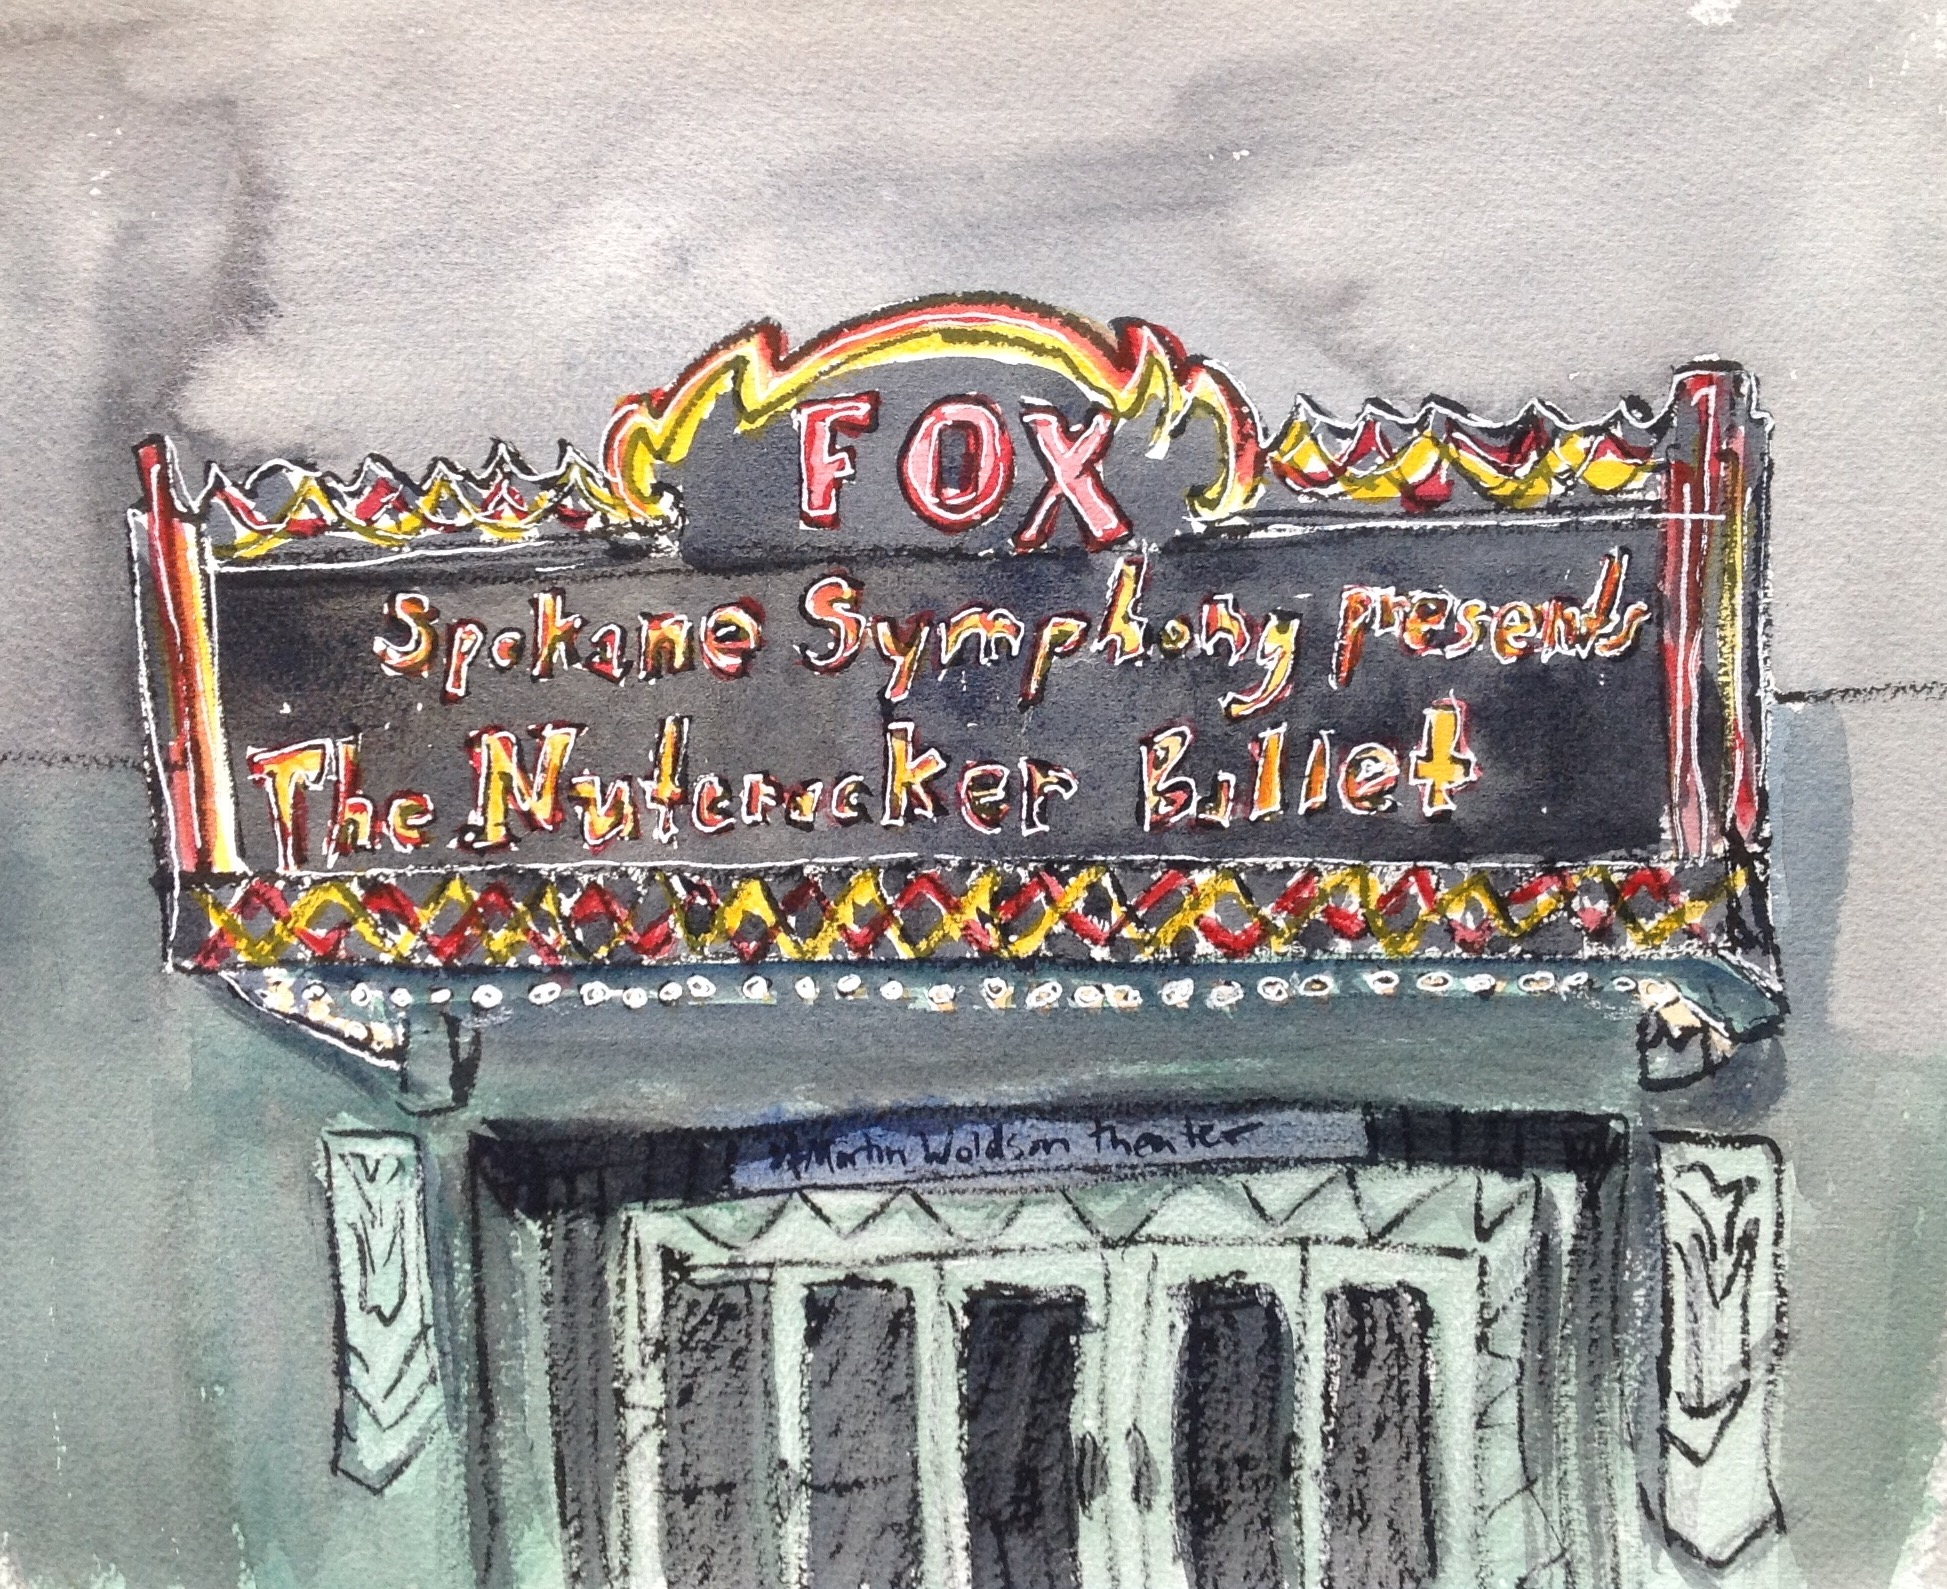 Before the Nutcracker started, my friend Molly and I went over to the Brooklyn Deli for a little something to nibble. While we were waiting for our food to arrive, I sketched the Fox Theater Marque over the 1st Avenue entrance. There's nothing like beautiful, magical theater on a cold winter's night.